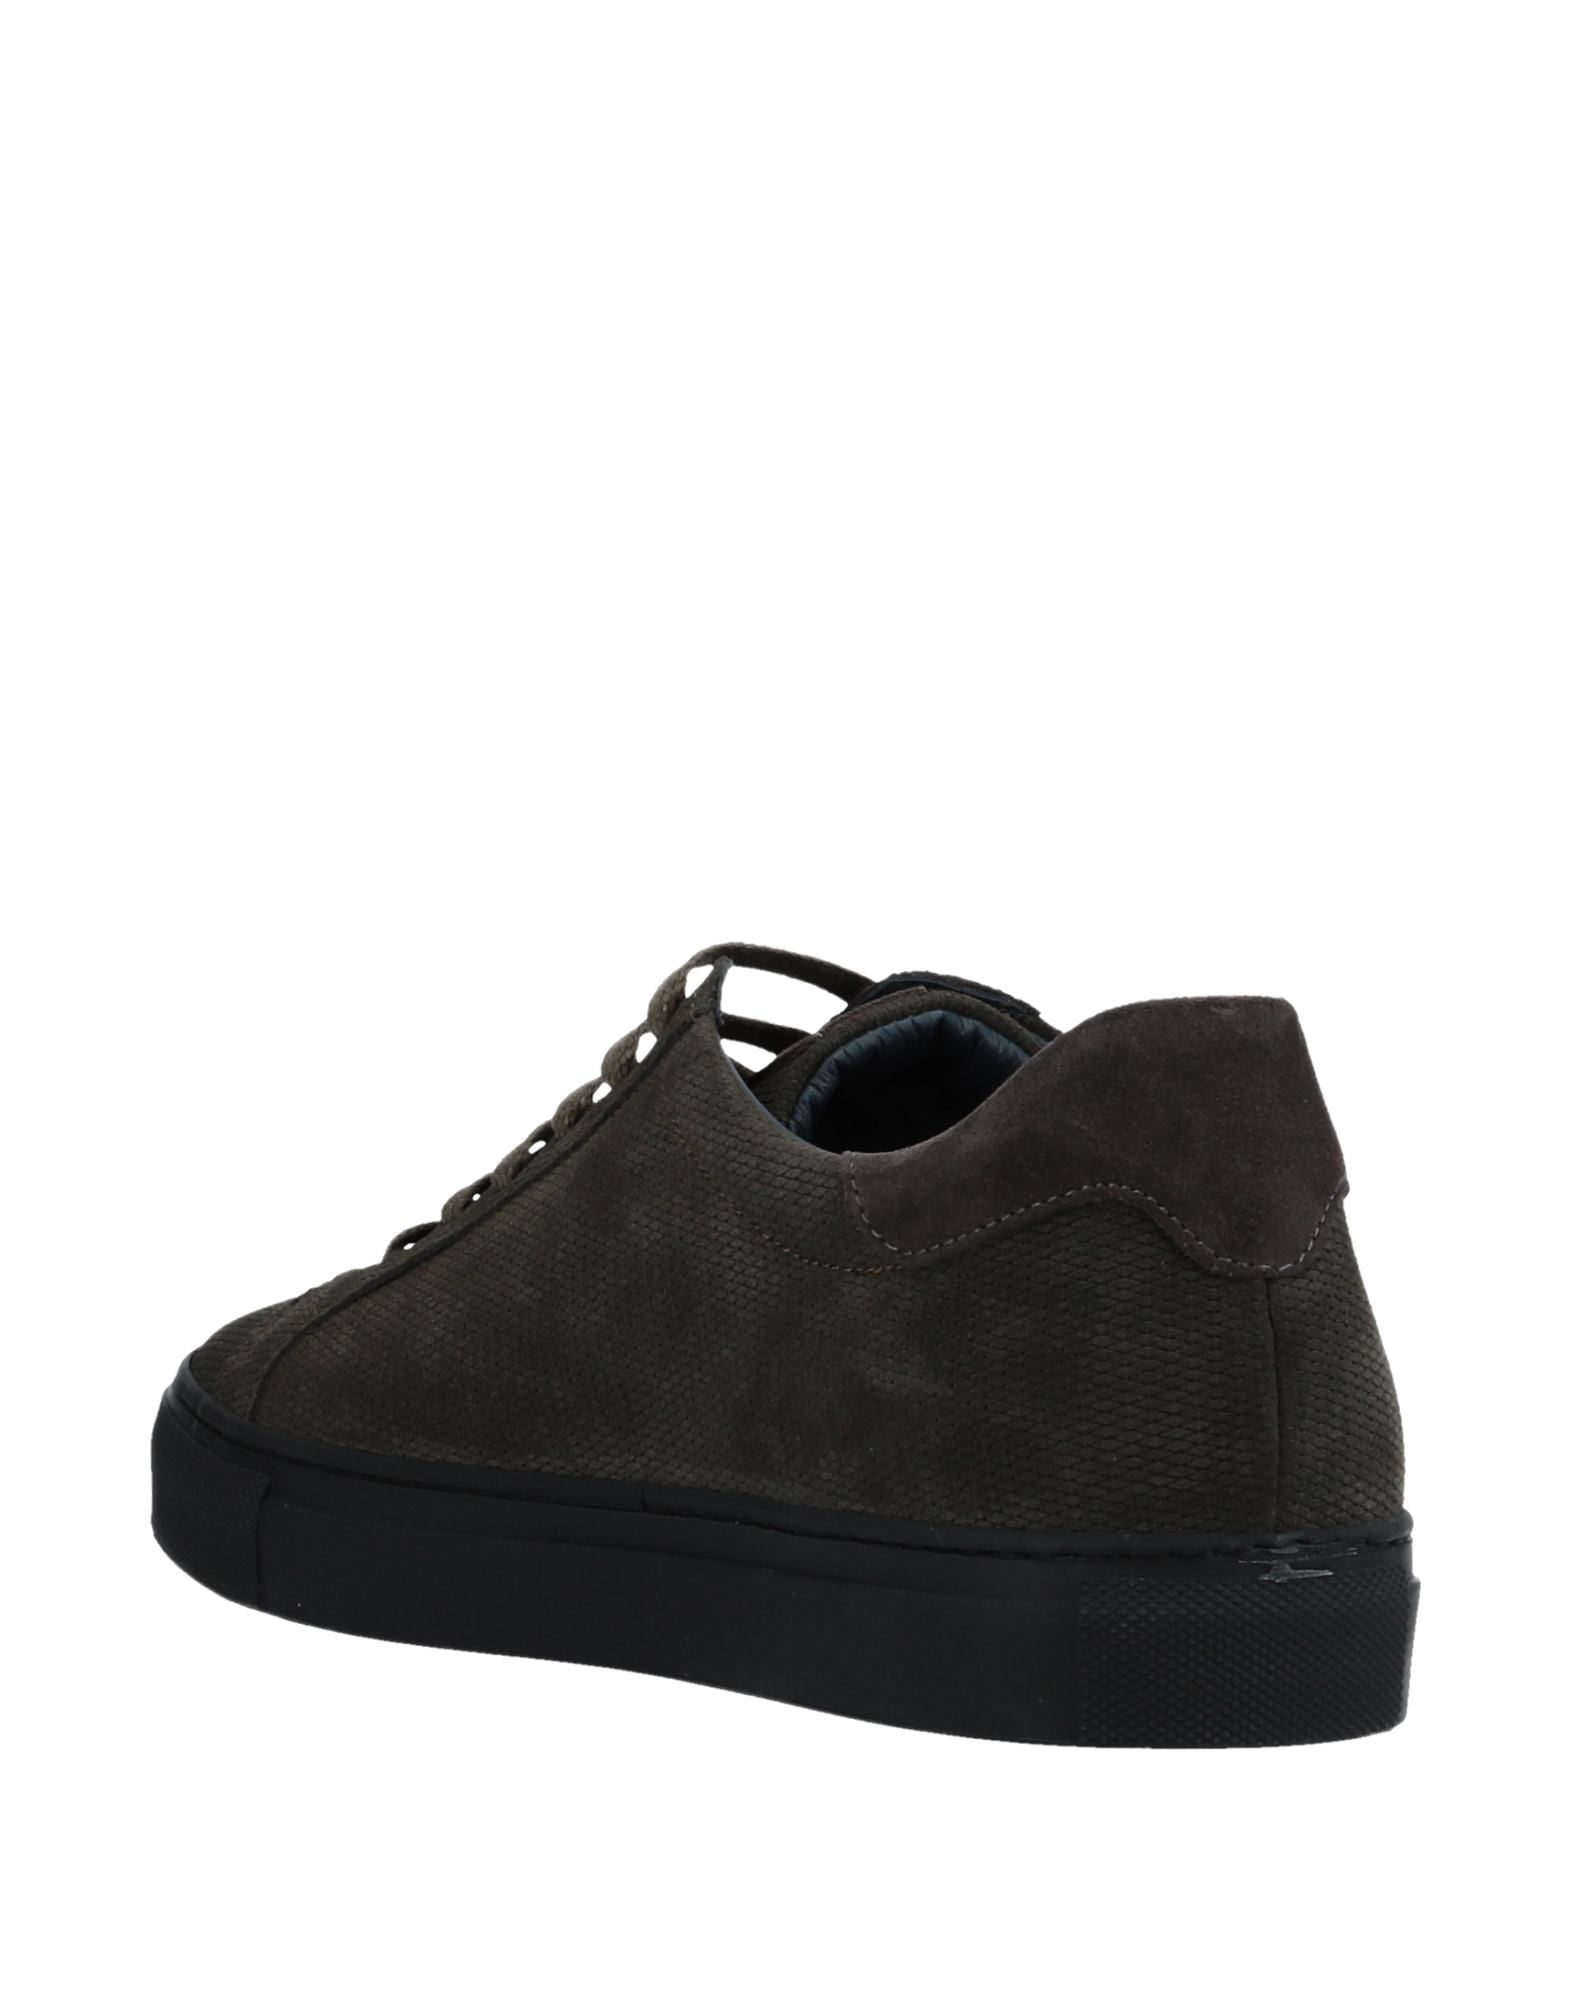 Fabiano Ricci Sneakers - Men on Fabiano Ricci Sneakers online on Men  Canada - 11508809EP 404a0c